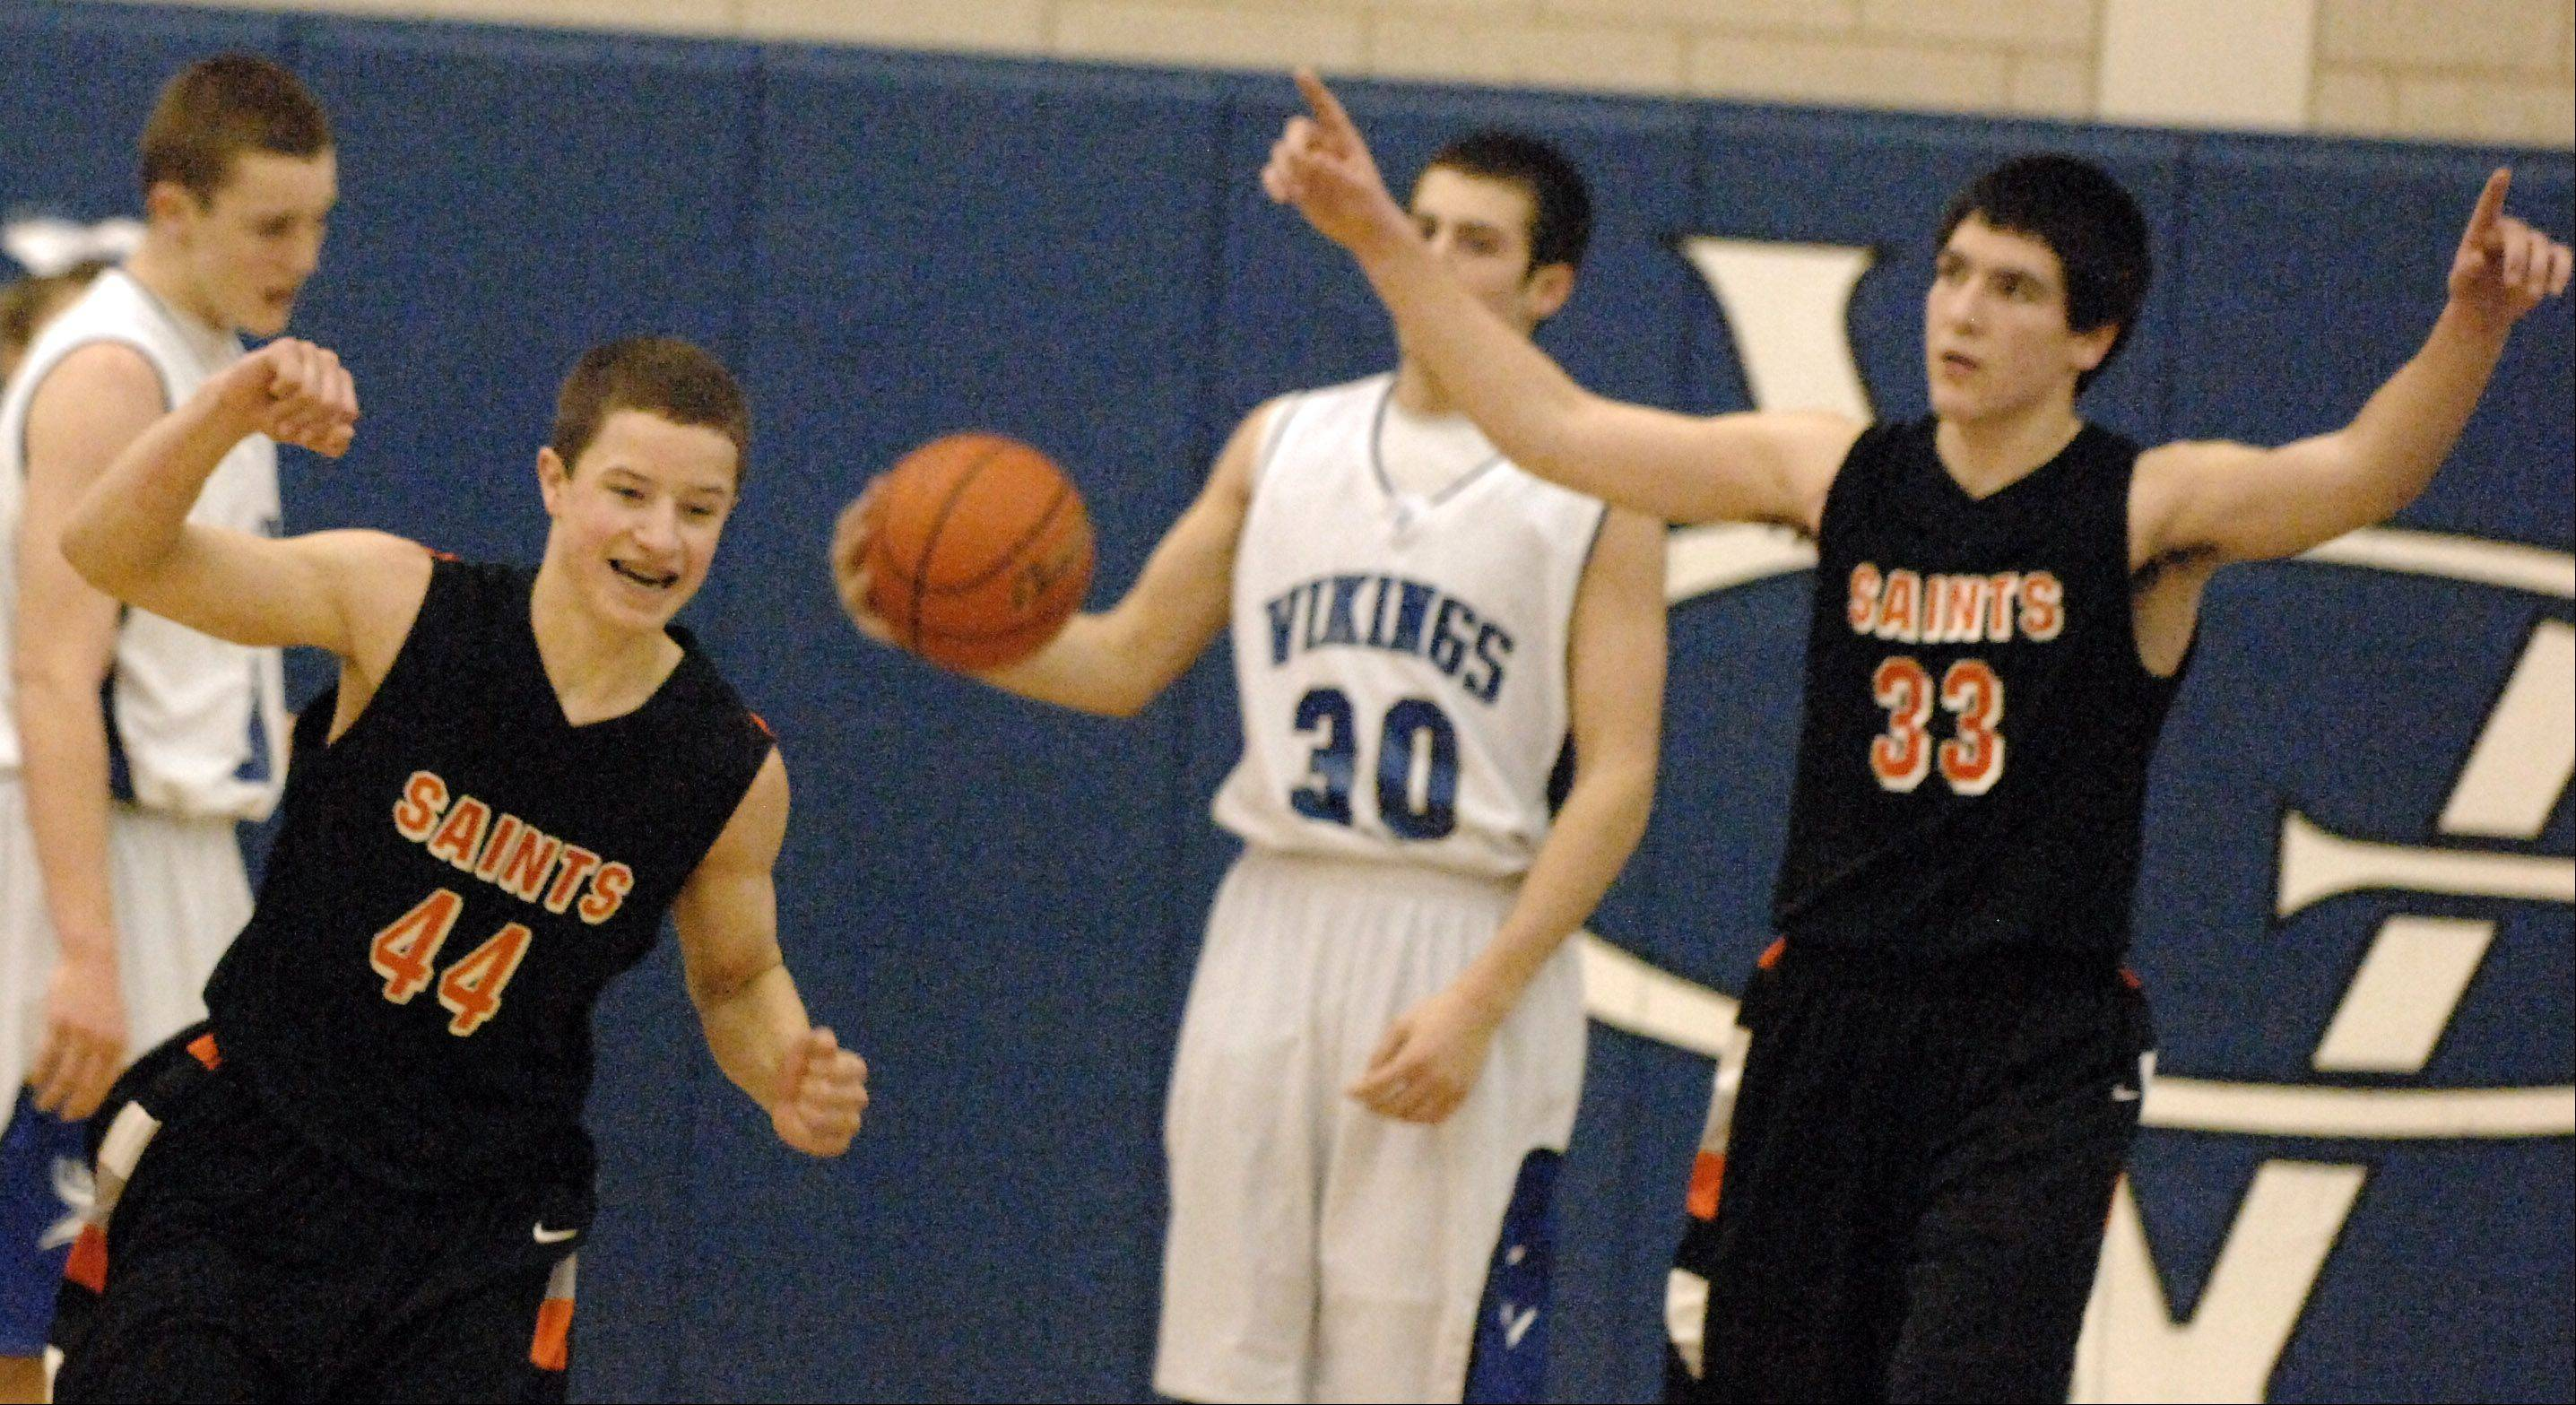 St. Charles East's Cole Gentry and Jake Asquini celebrate their double-overtime win.